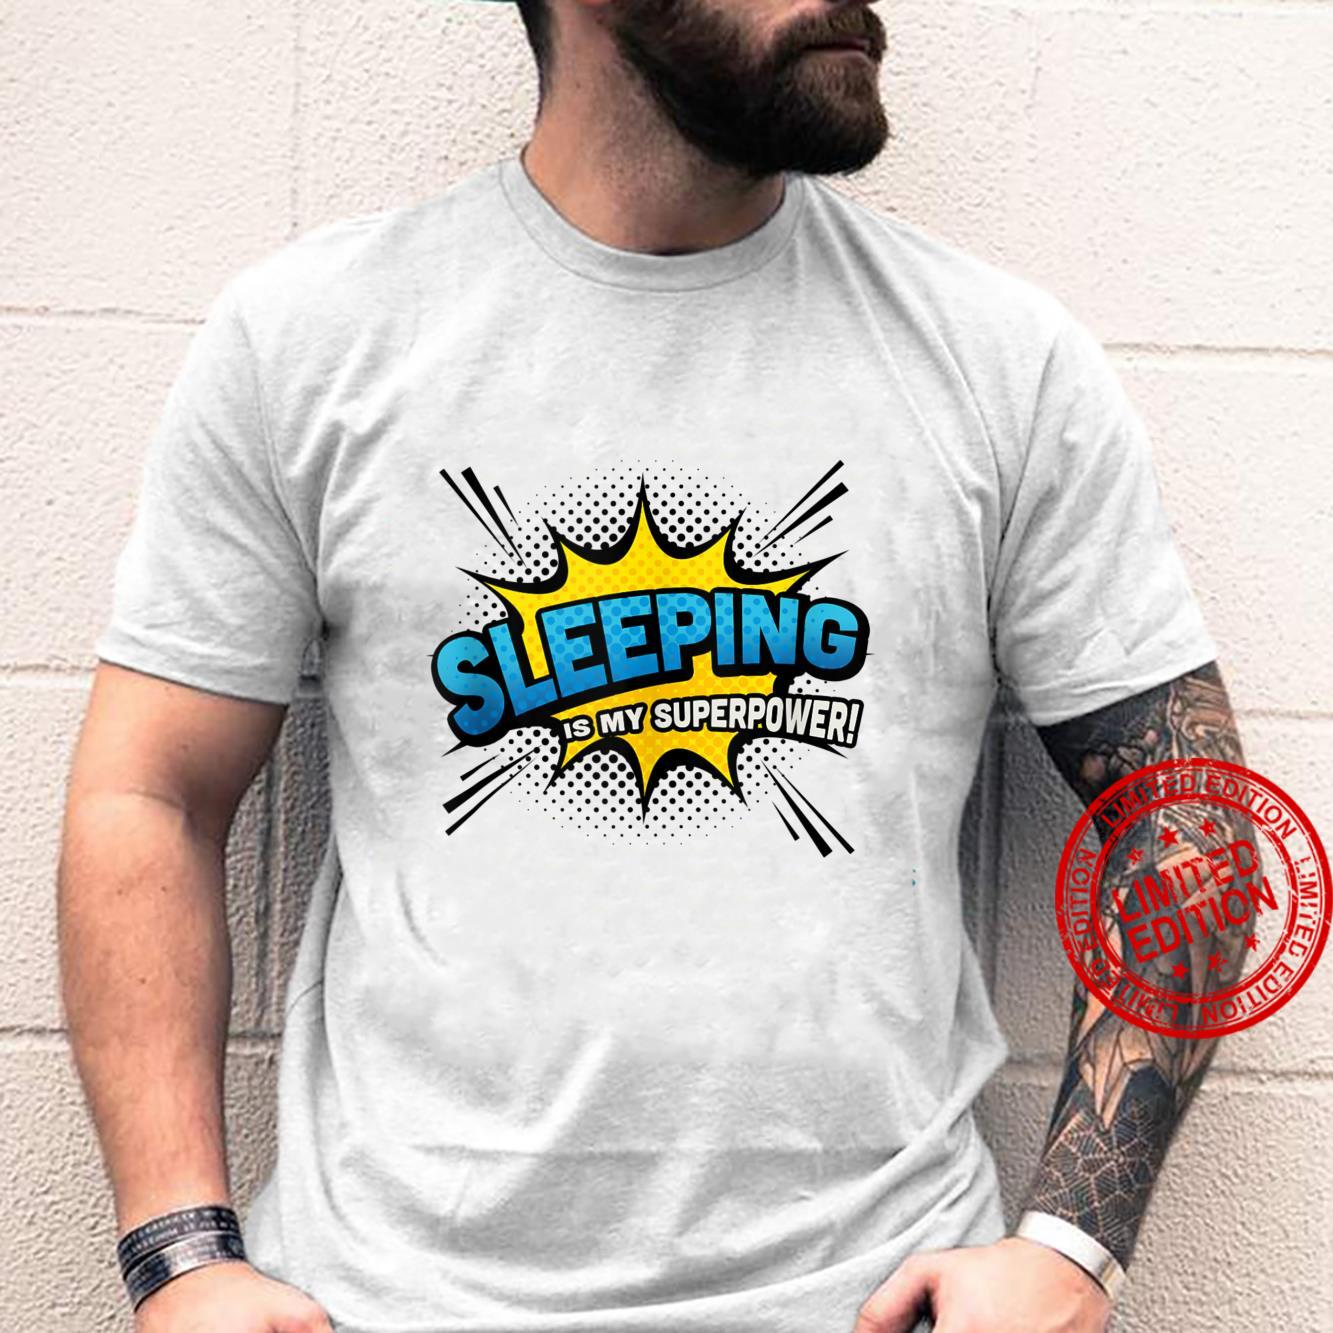 Sleeping is my Superpower Comic Book Style Shirt